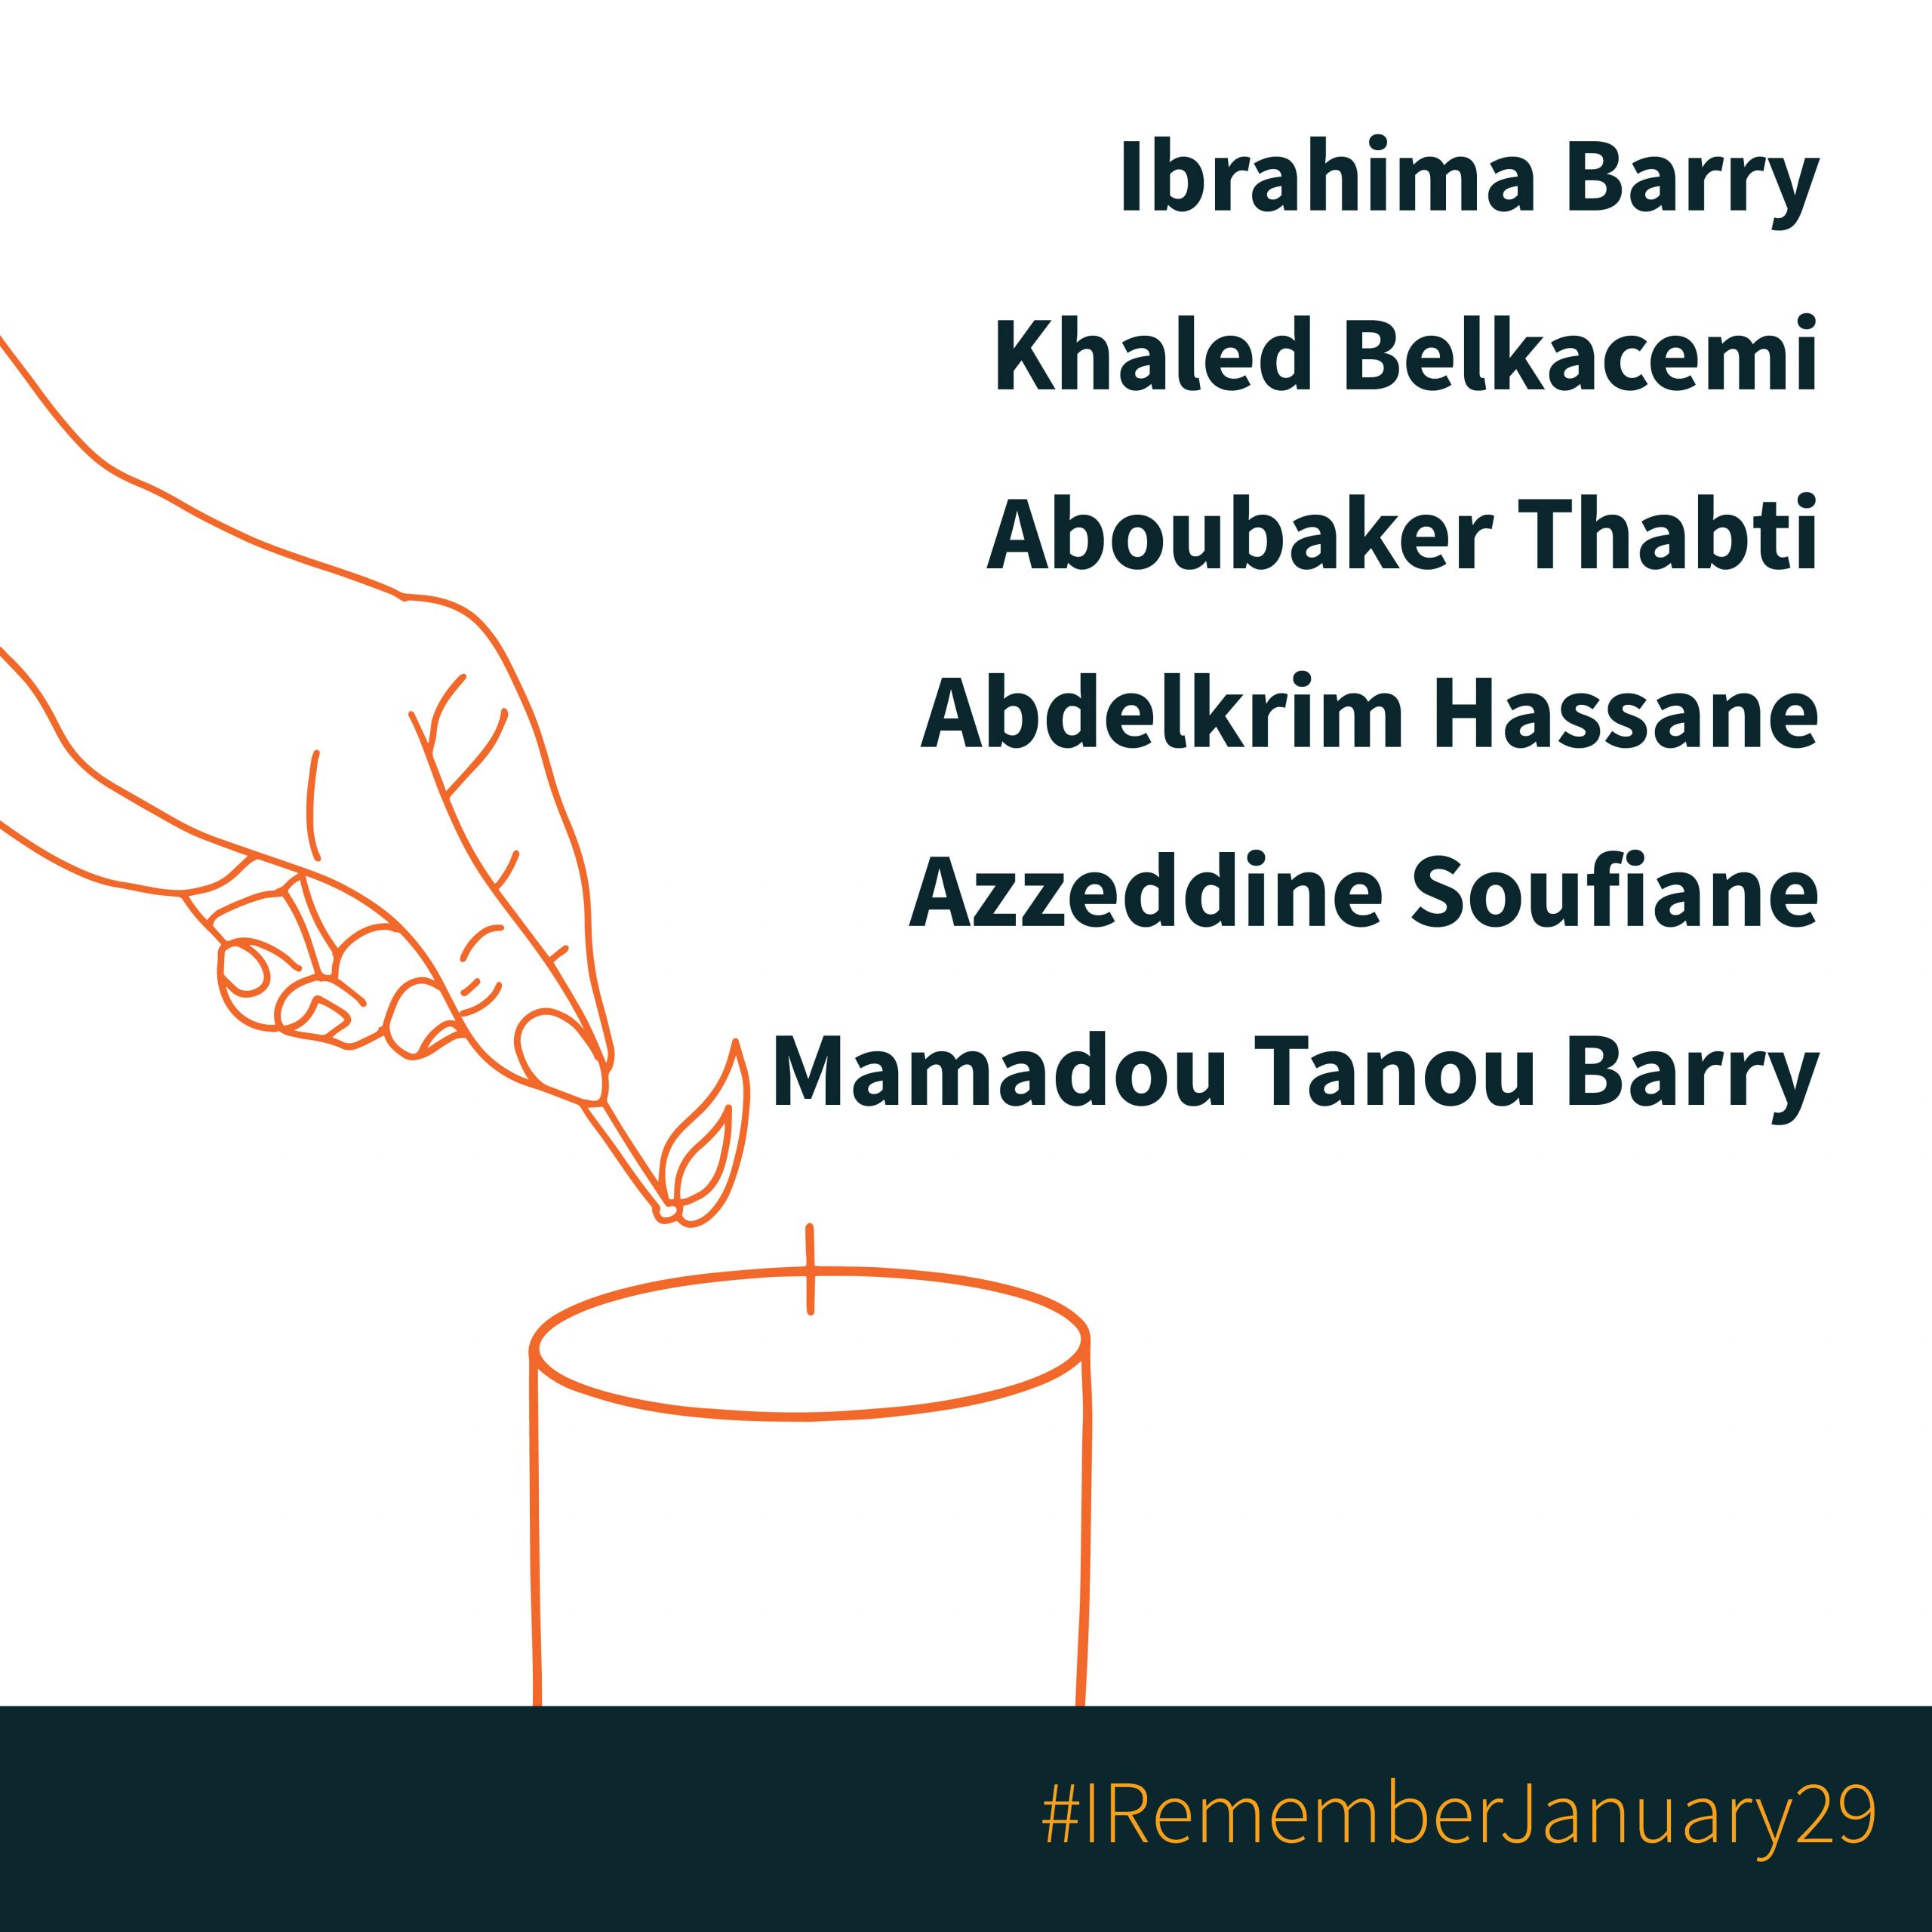 """Illustration of a hand lighting a candle. A hashtag reads """"I remember January 29"""" and the following names are listed: Ibrahima Barry, Khaled Belkacemi, Aboubaker Thabti, Abdelkrim Hassane, Azzedine Soufiane, and Mamadou Tanou Barry."""